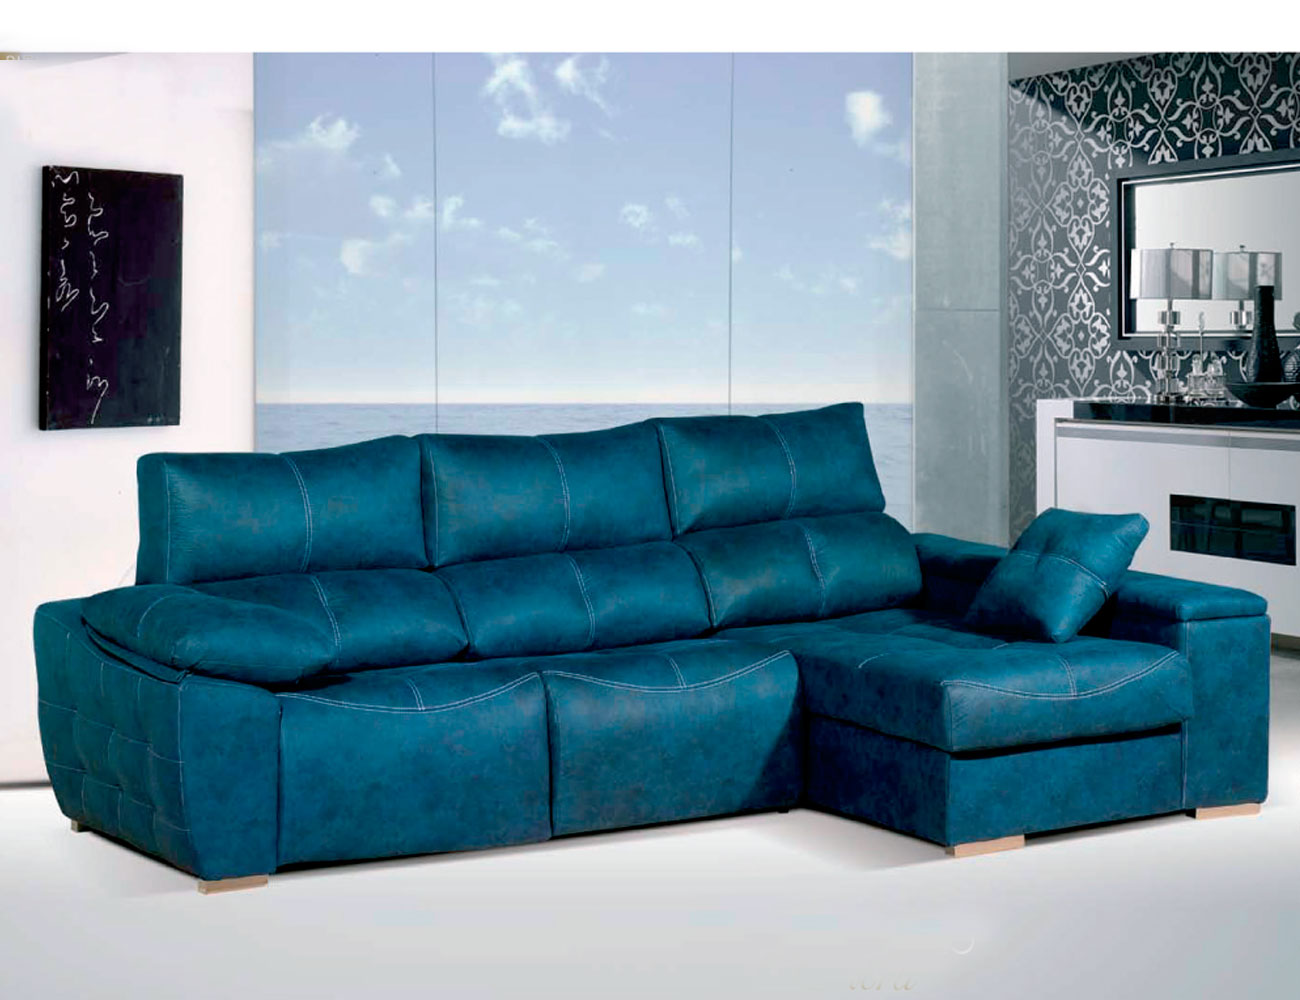 Sofa chaiselongue relax 2 motores anti manchas turquesa49